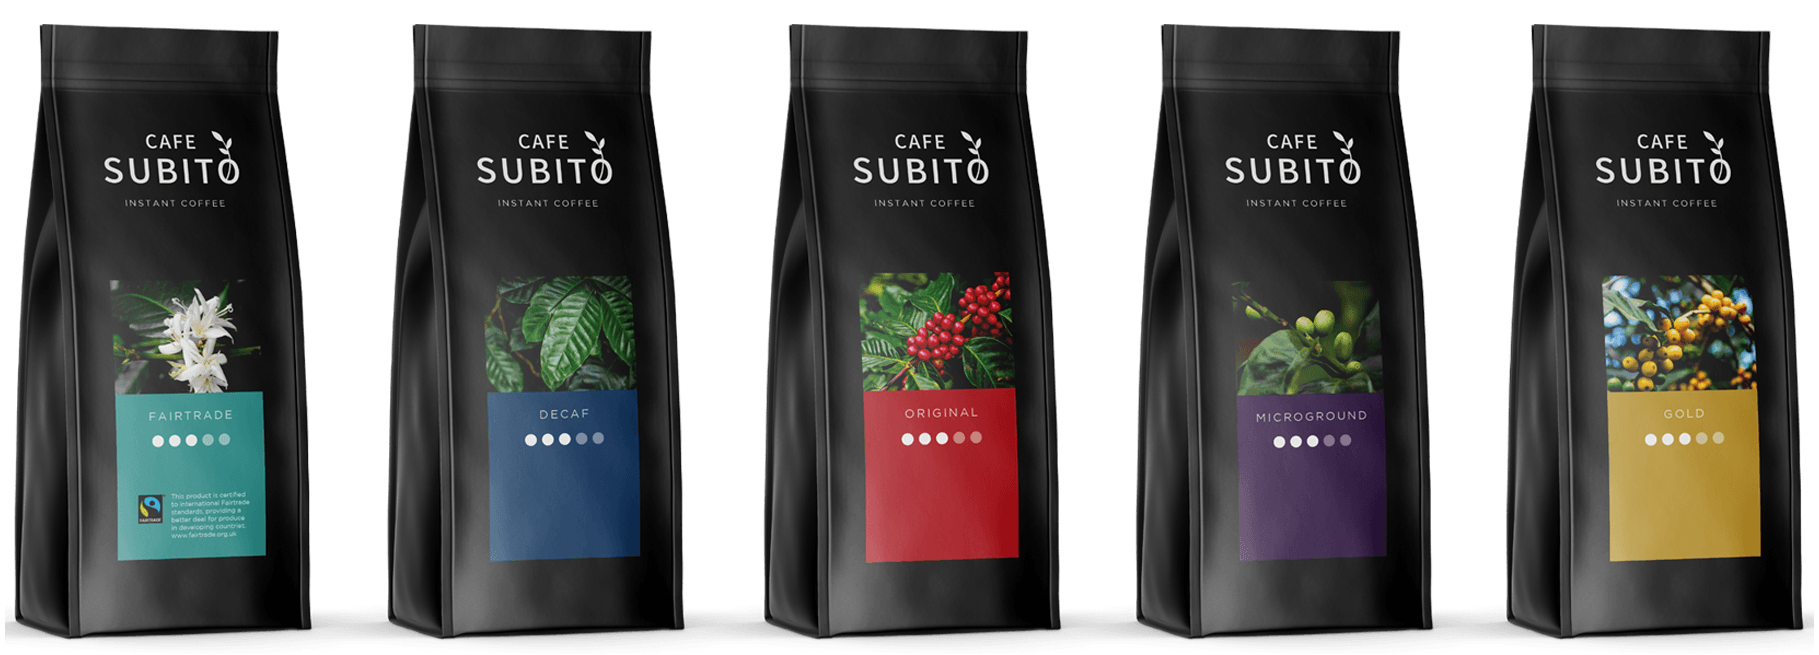 Cafe Subito Instant Coffee Bags